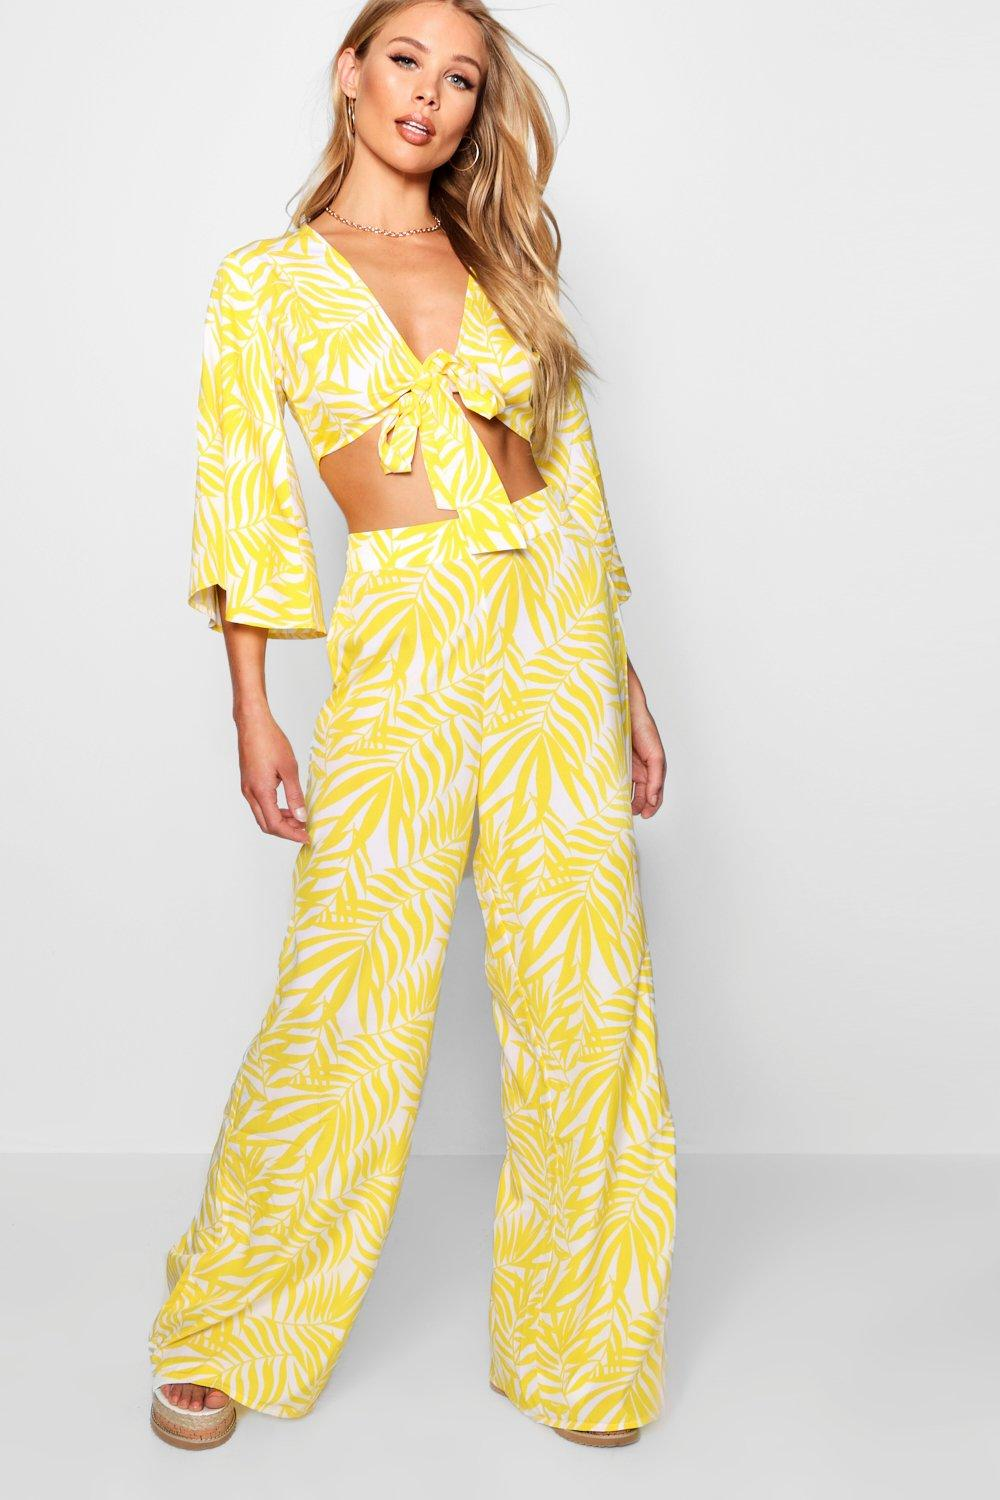 ord Top Frill Tie Front and Wide Nala Co Leg ng8x4O4